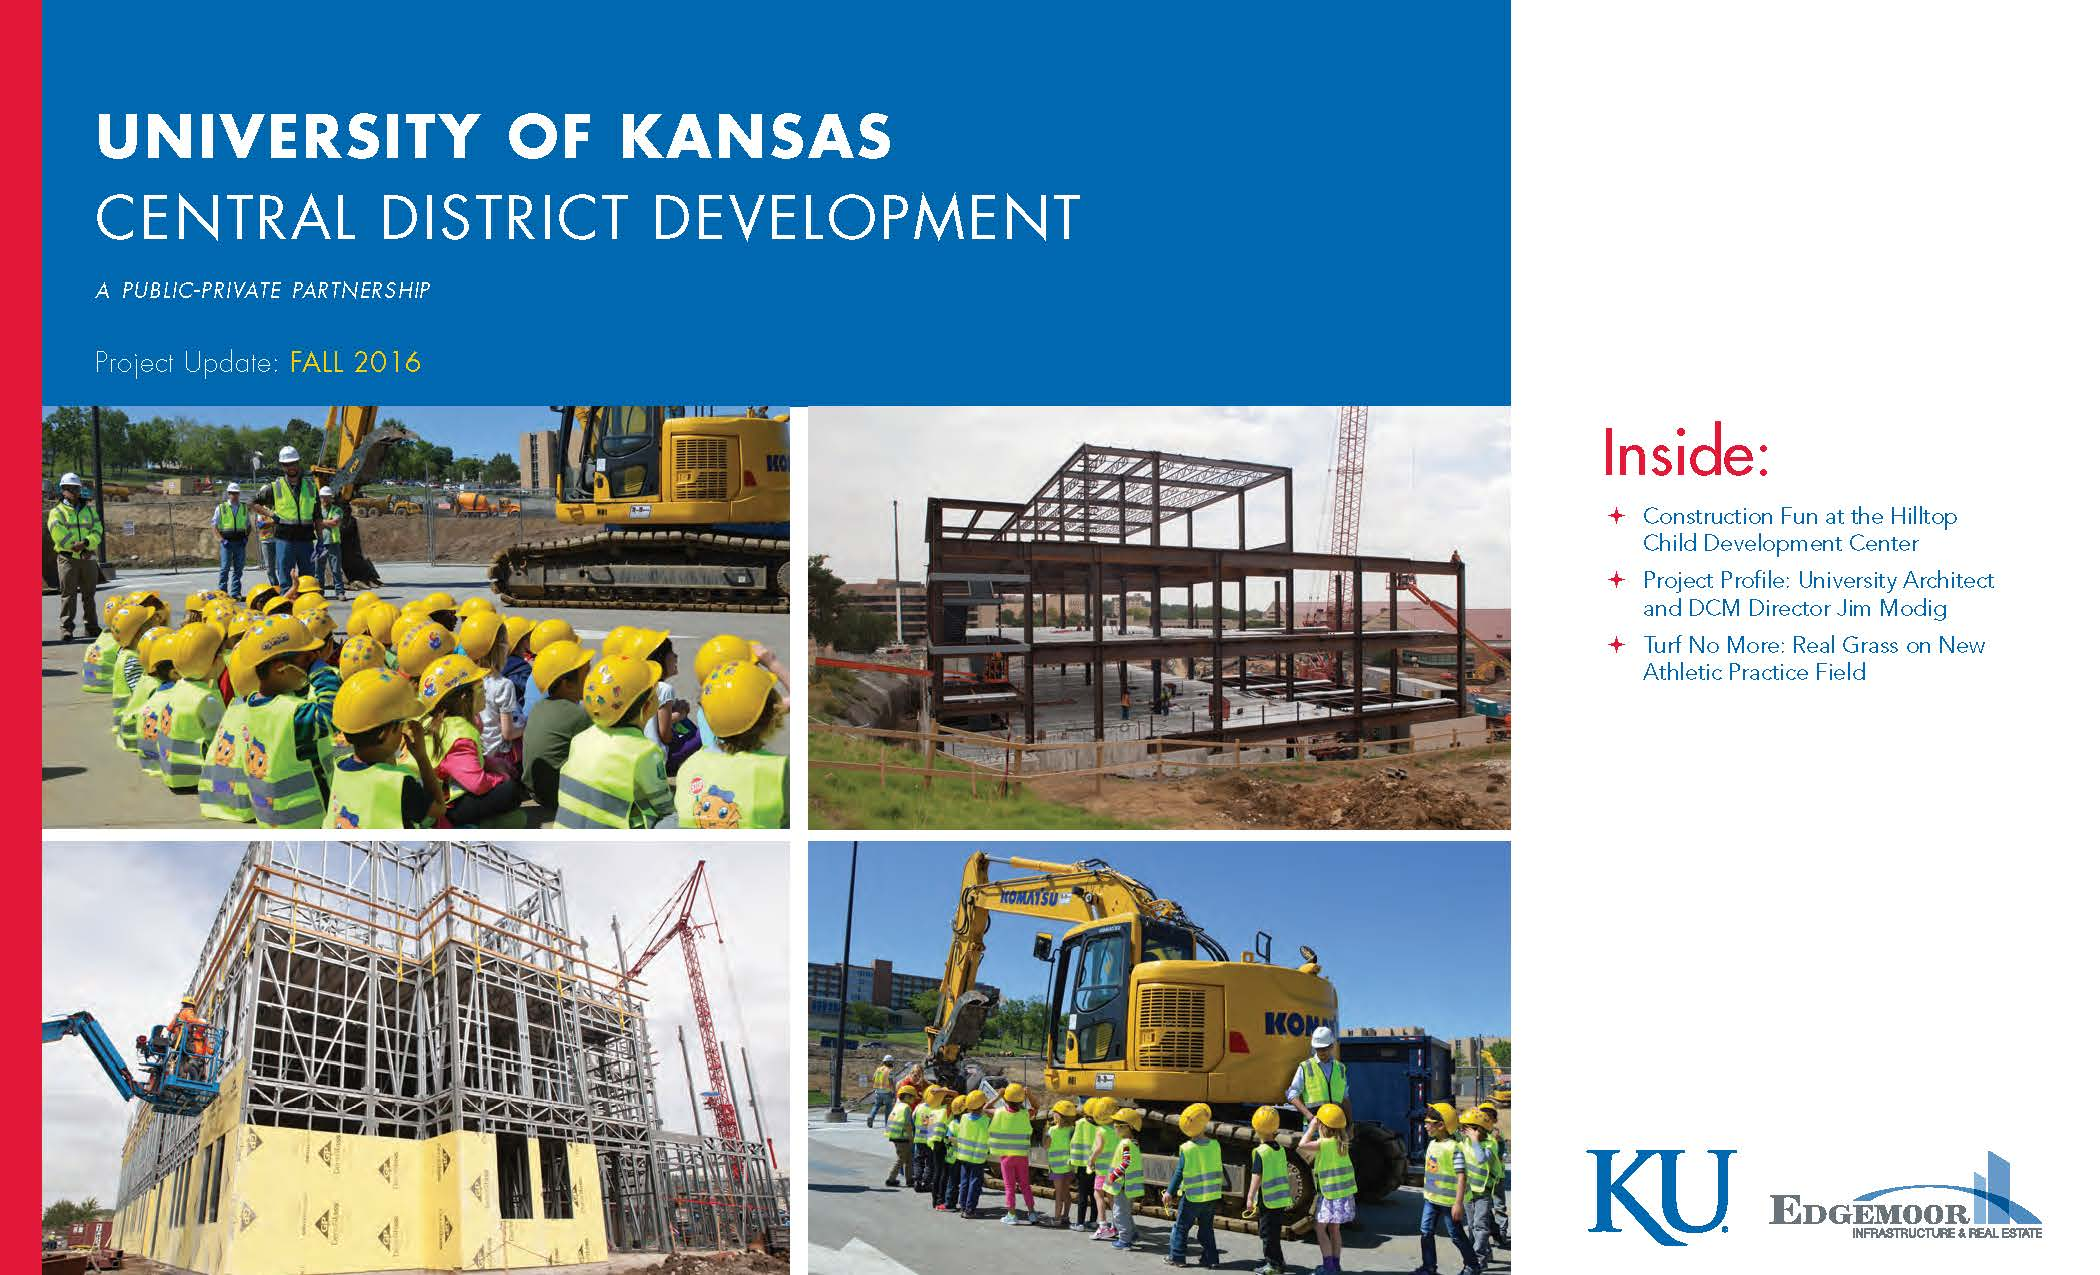 Download a copy of the University of Kansas' Central District Development Project Newsletter - Fall 2016.